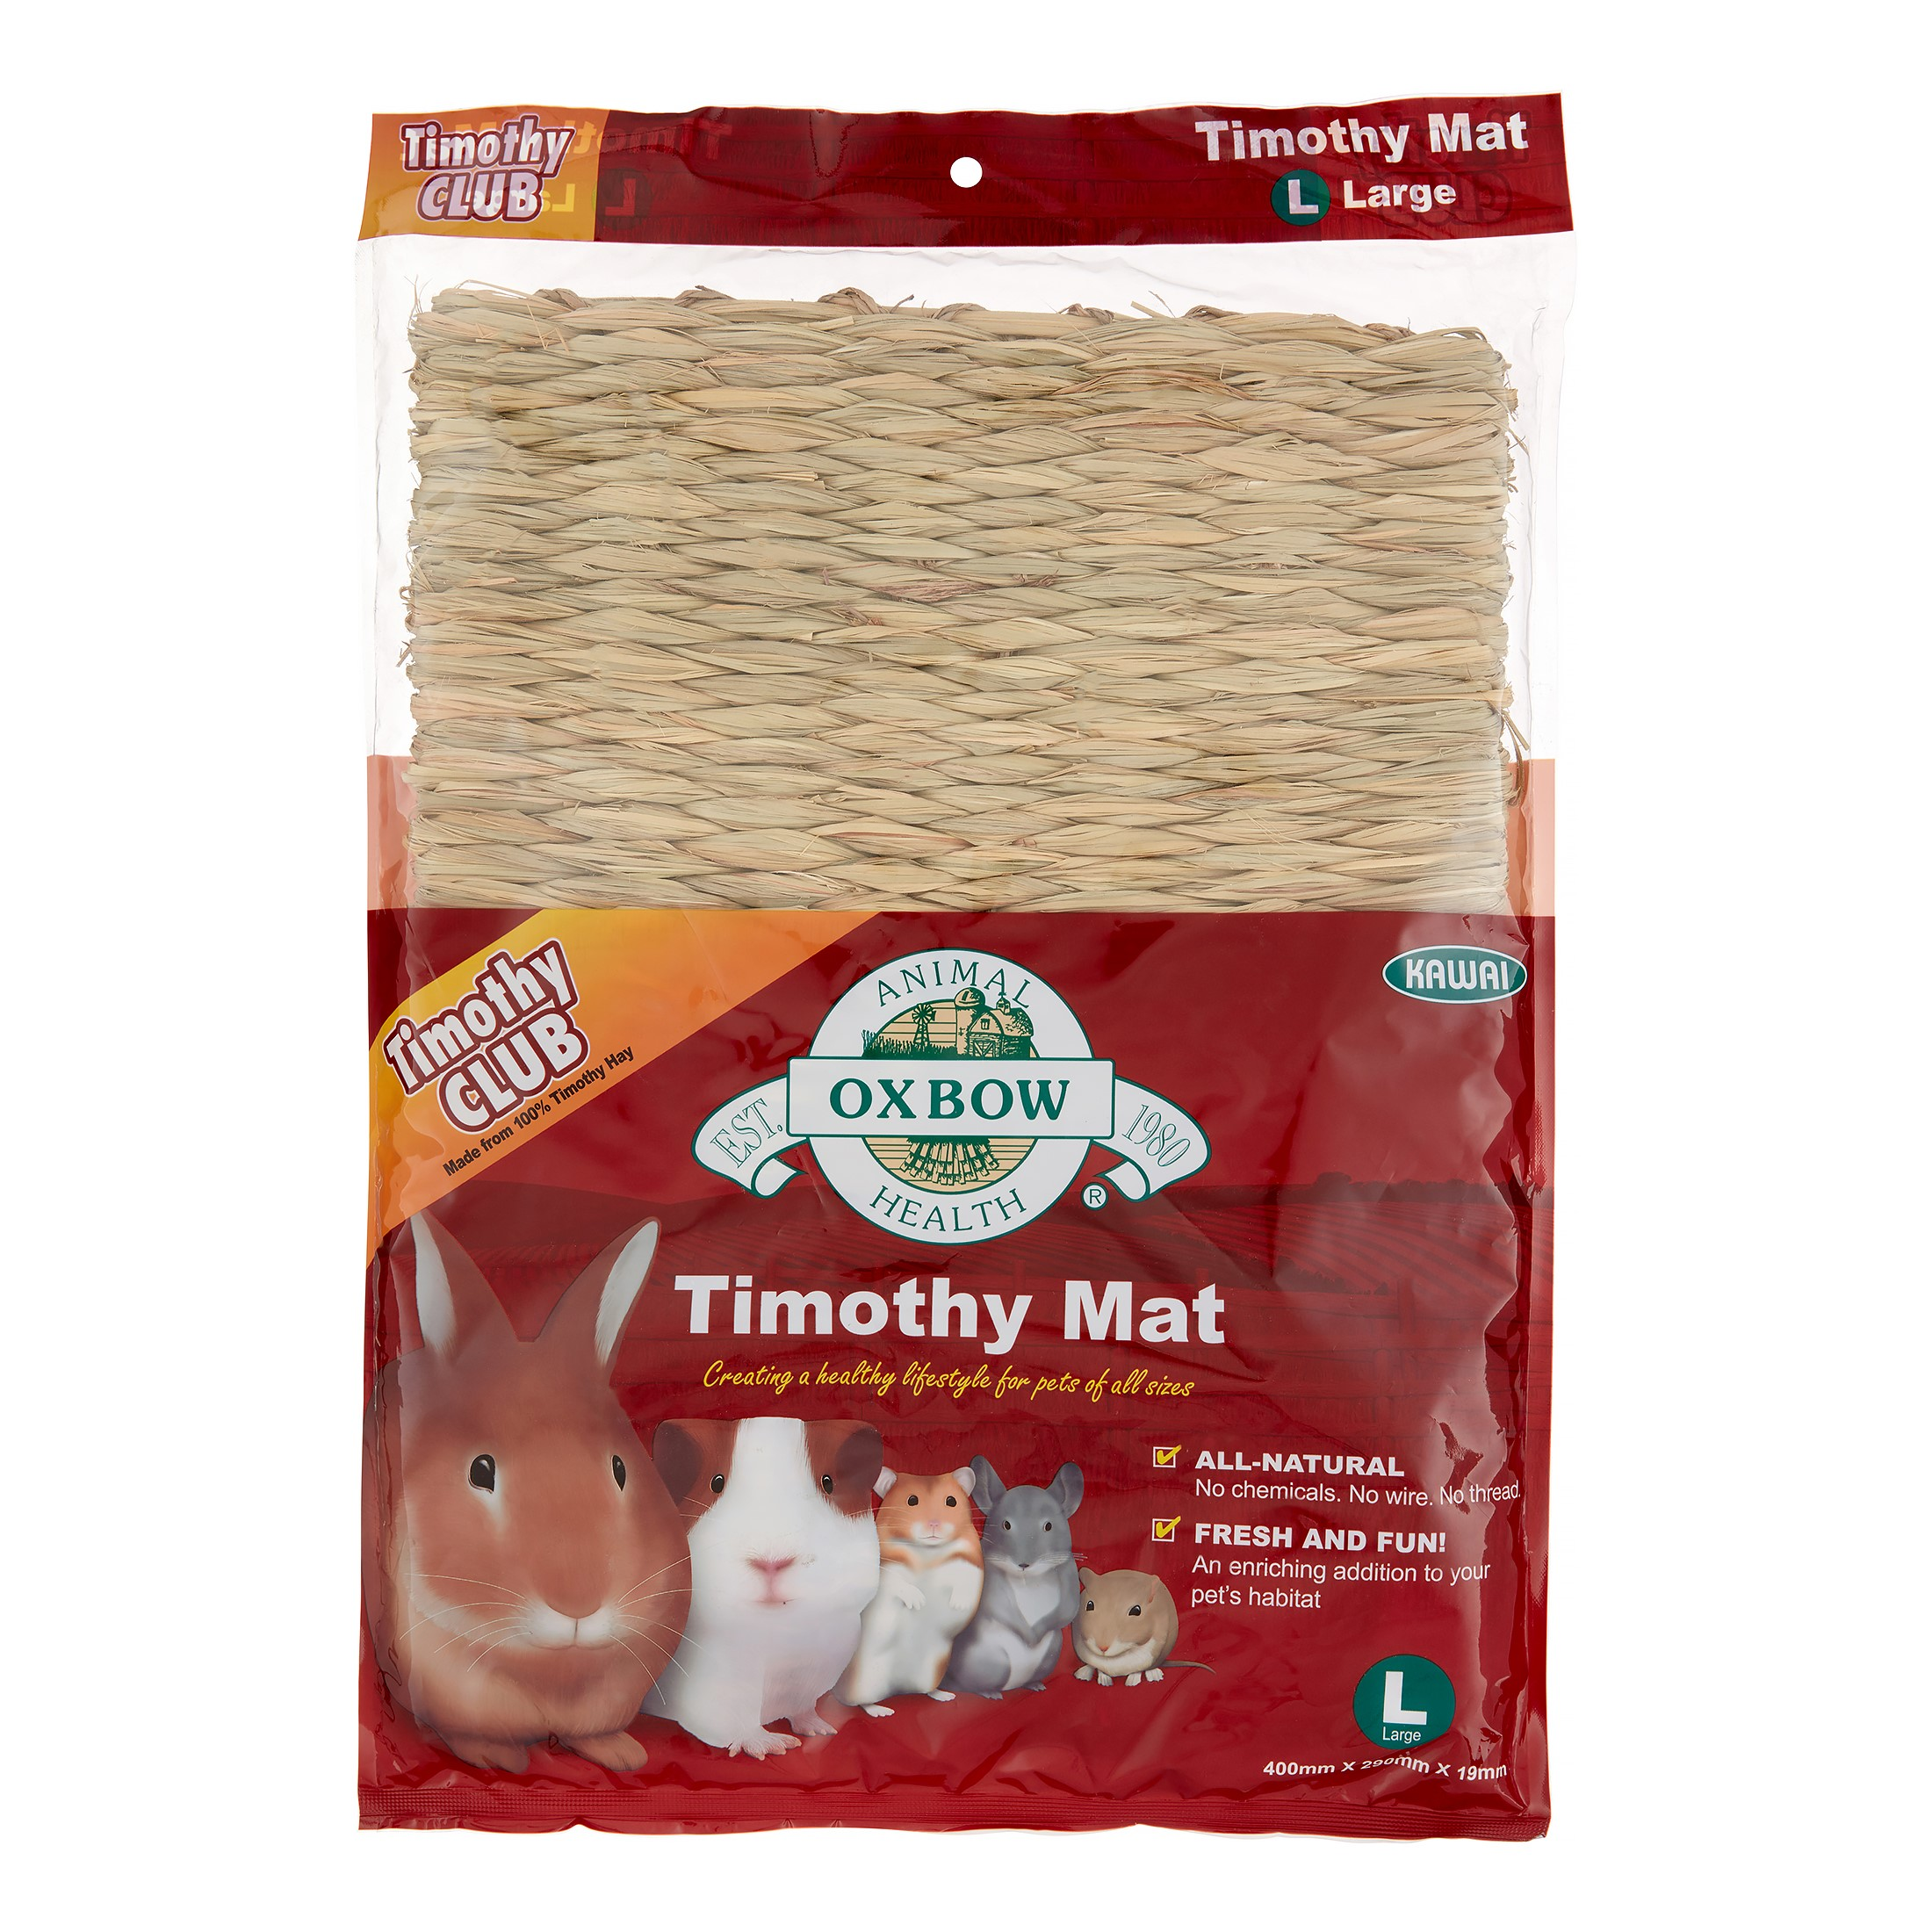 Oxbow Timothy Club Small Animal Mat, Large